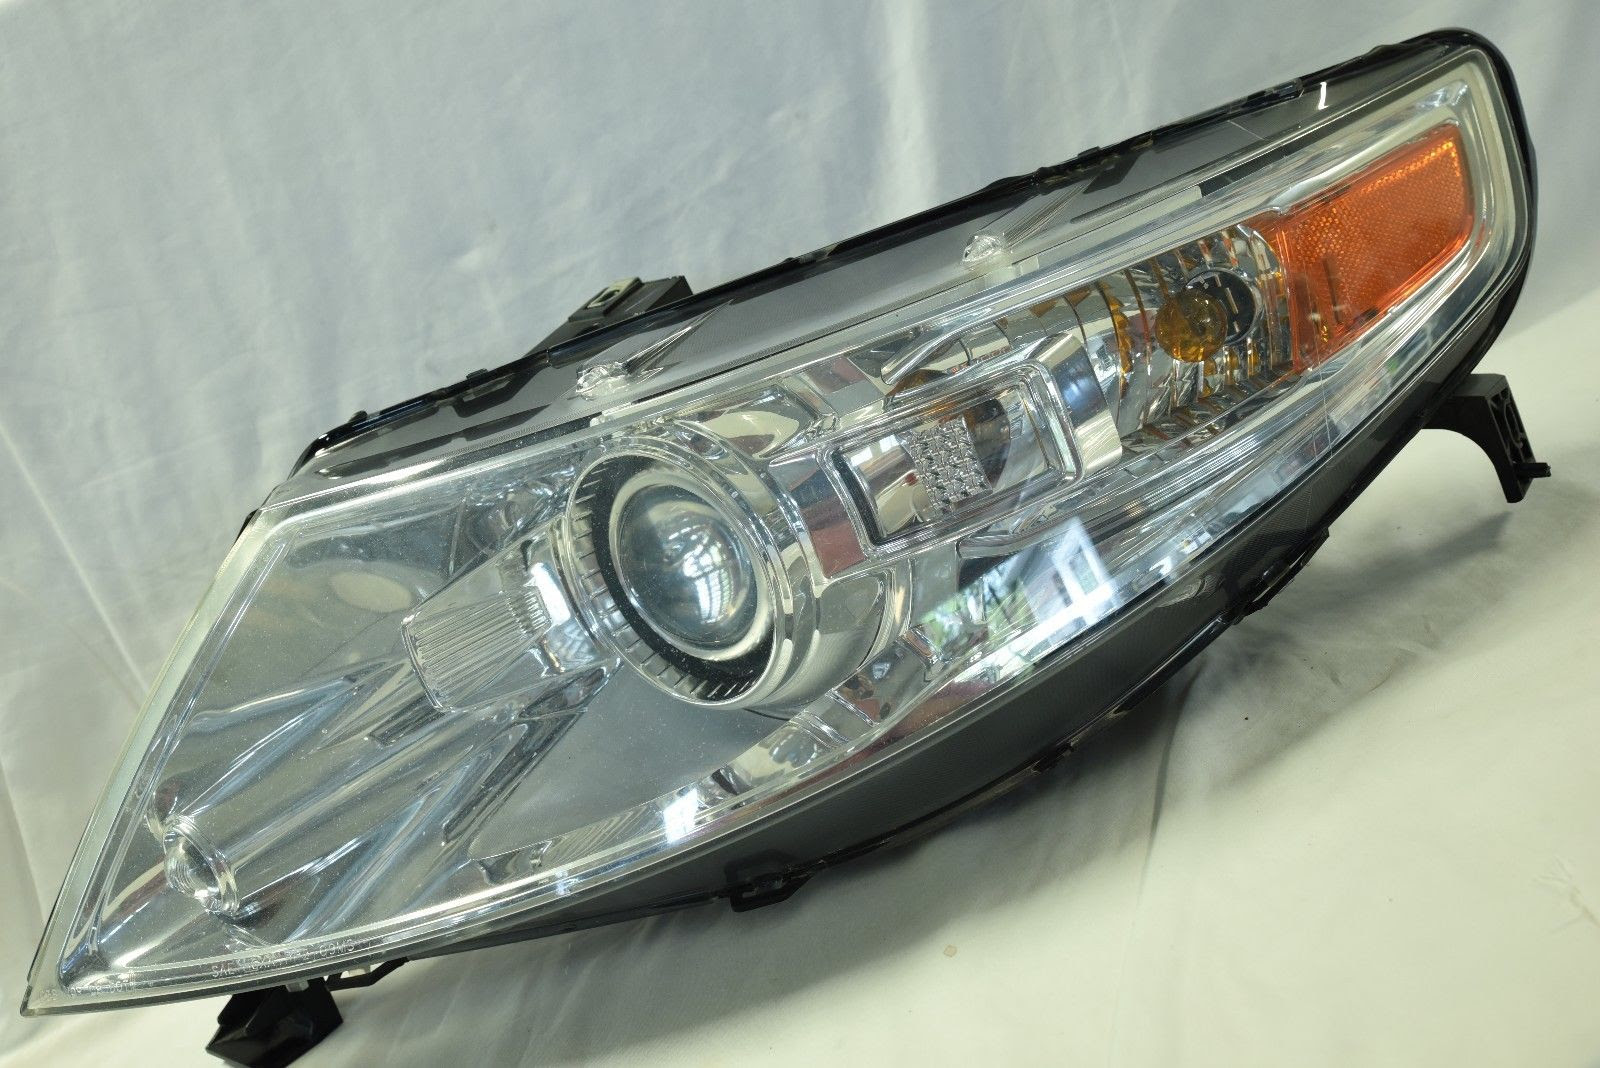 2009 Lincoln Mks Headlight Replacement